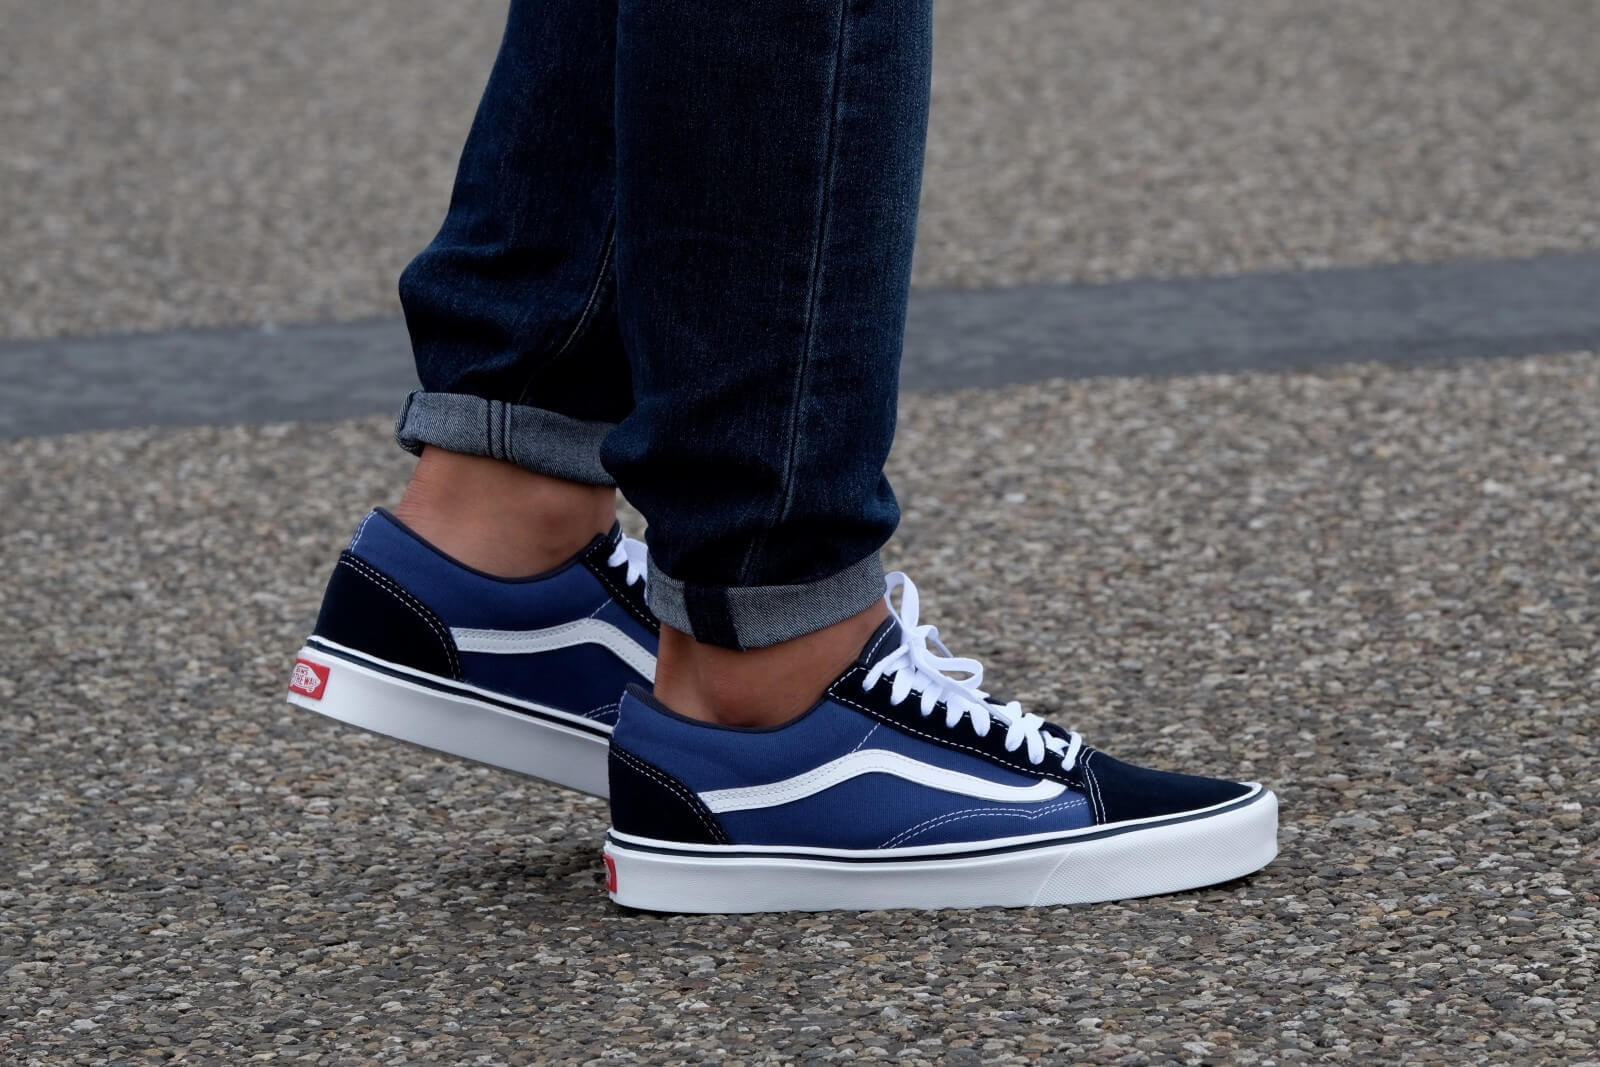 vans old skool lite suede canvas navy white vn0004o6ivf